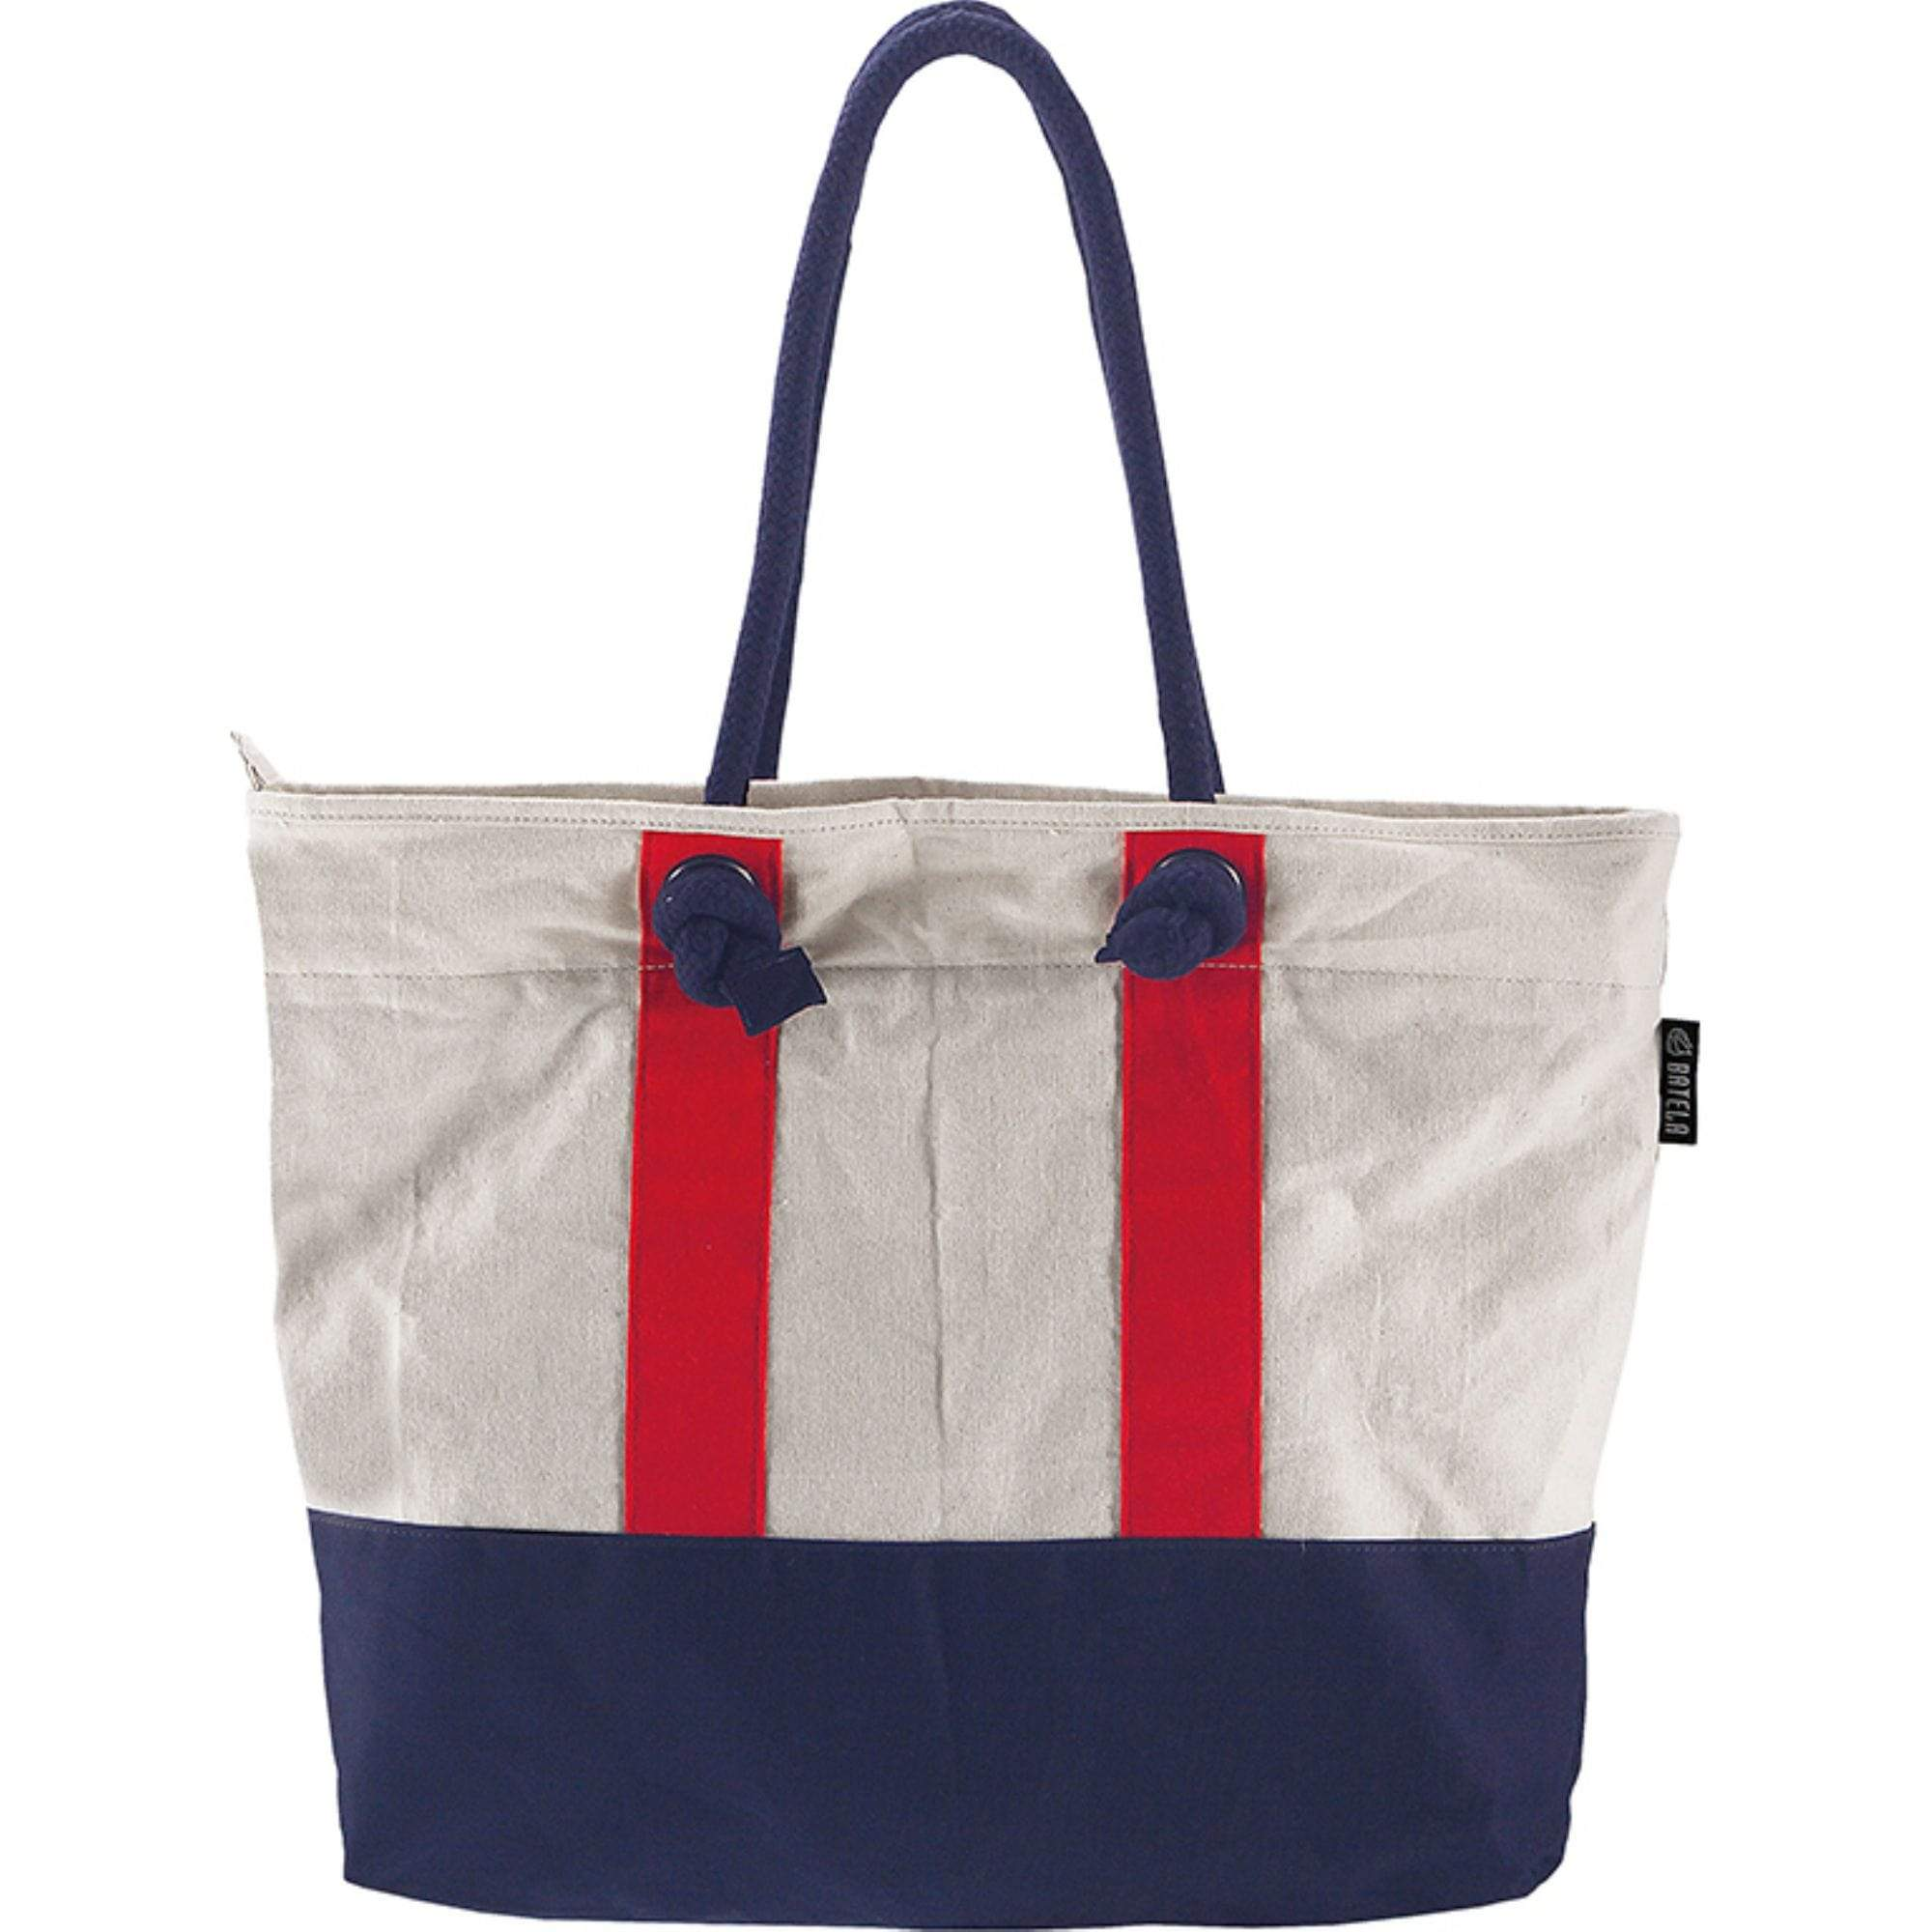 Batela Giftware-Bags-Large Beach & Handbag